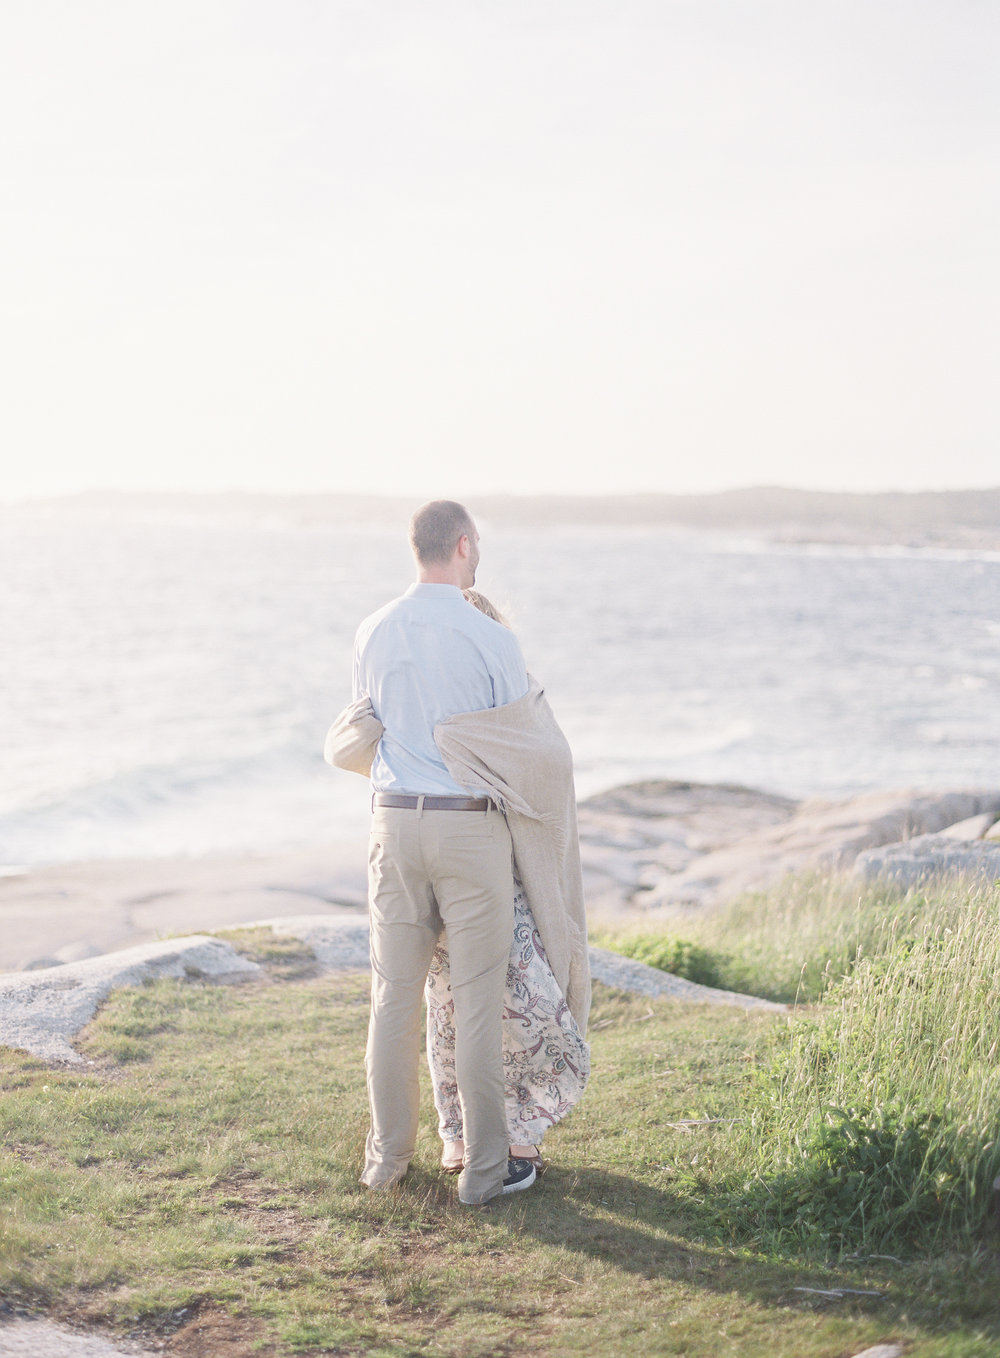 Jacqueline Anne Photography - Alex and Andrew Engagement at Peggy's Cove - Halifax-118.jpg